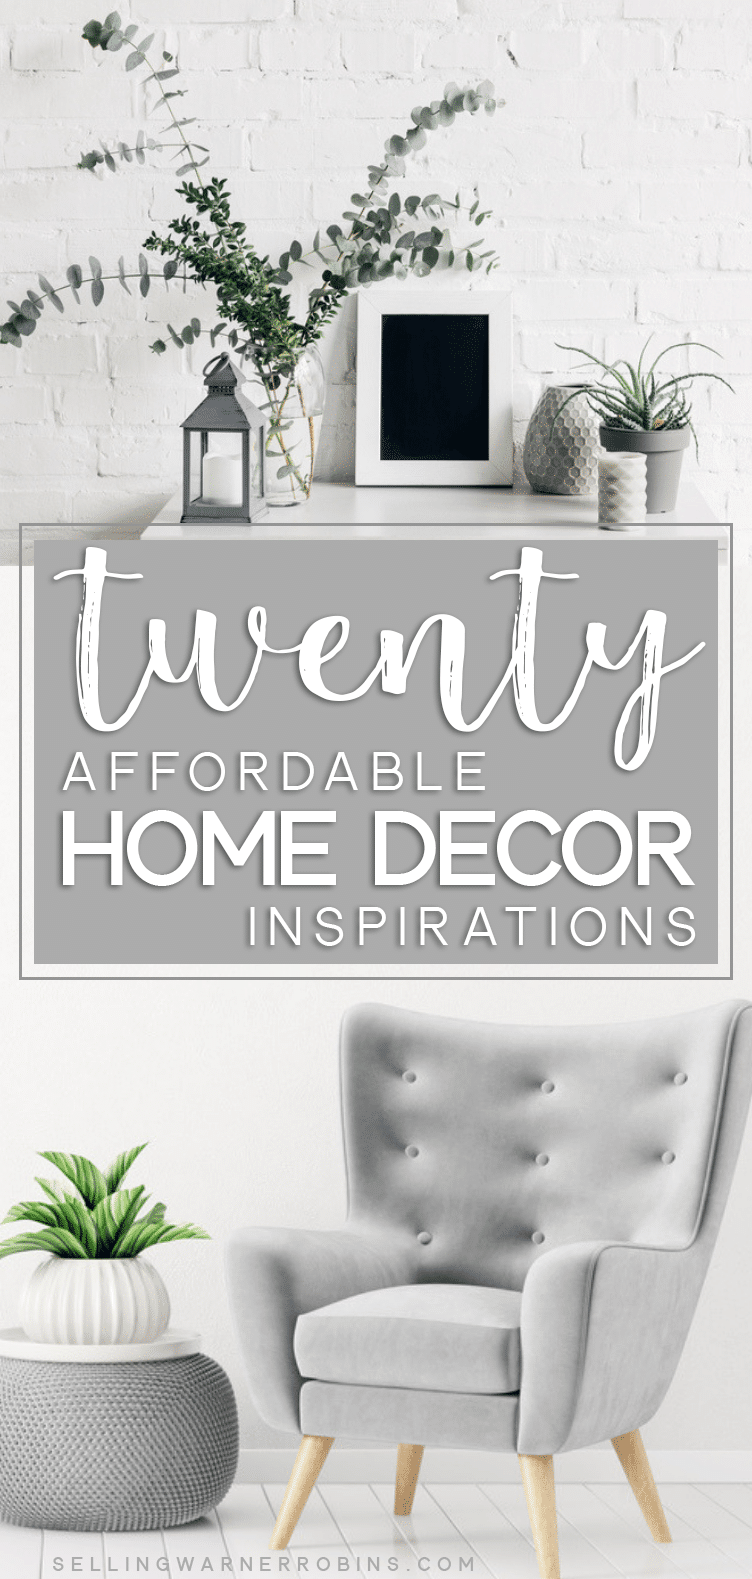 Affordable Home Decor Ideas